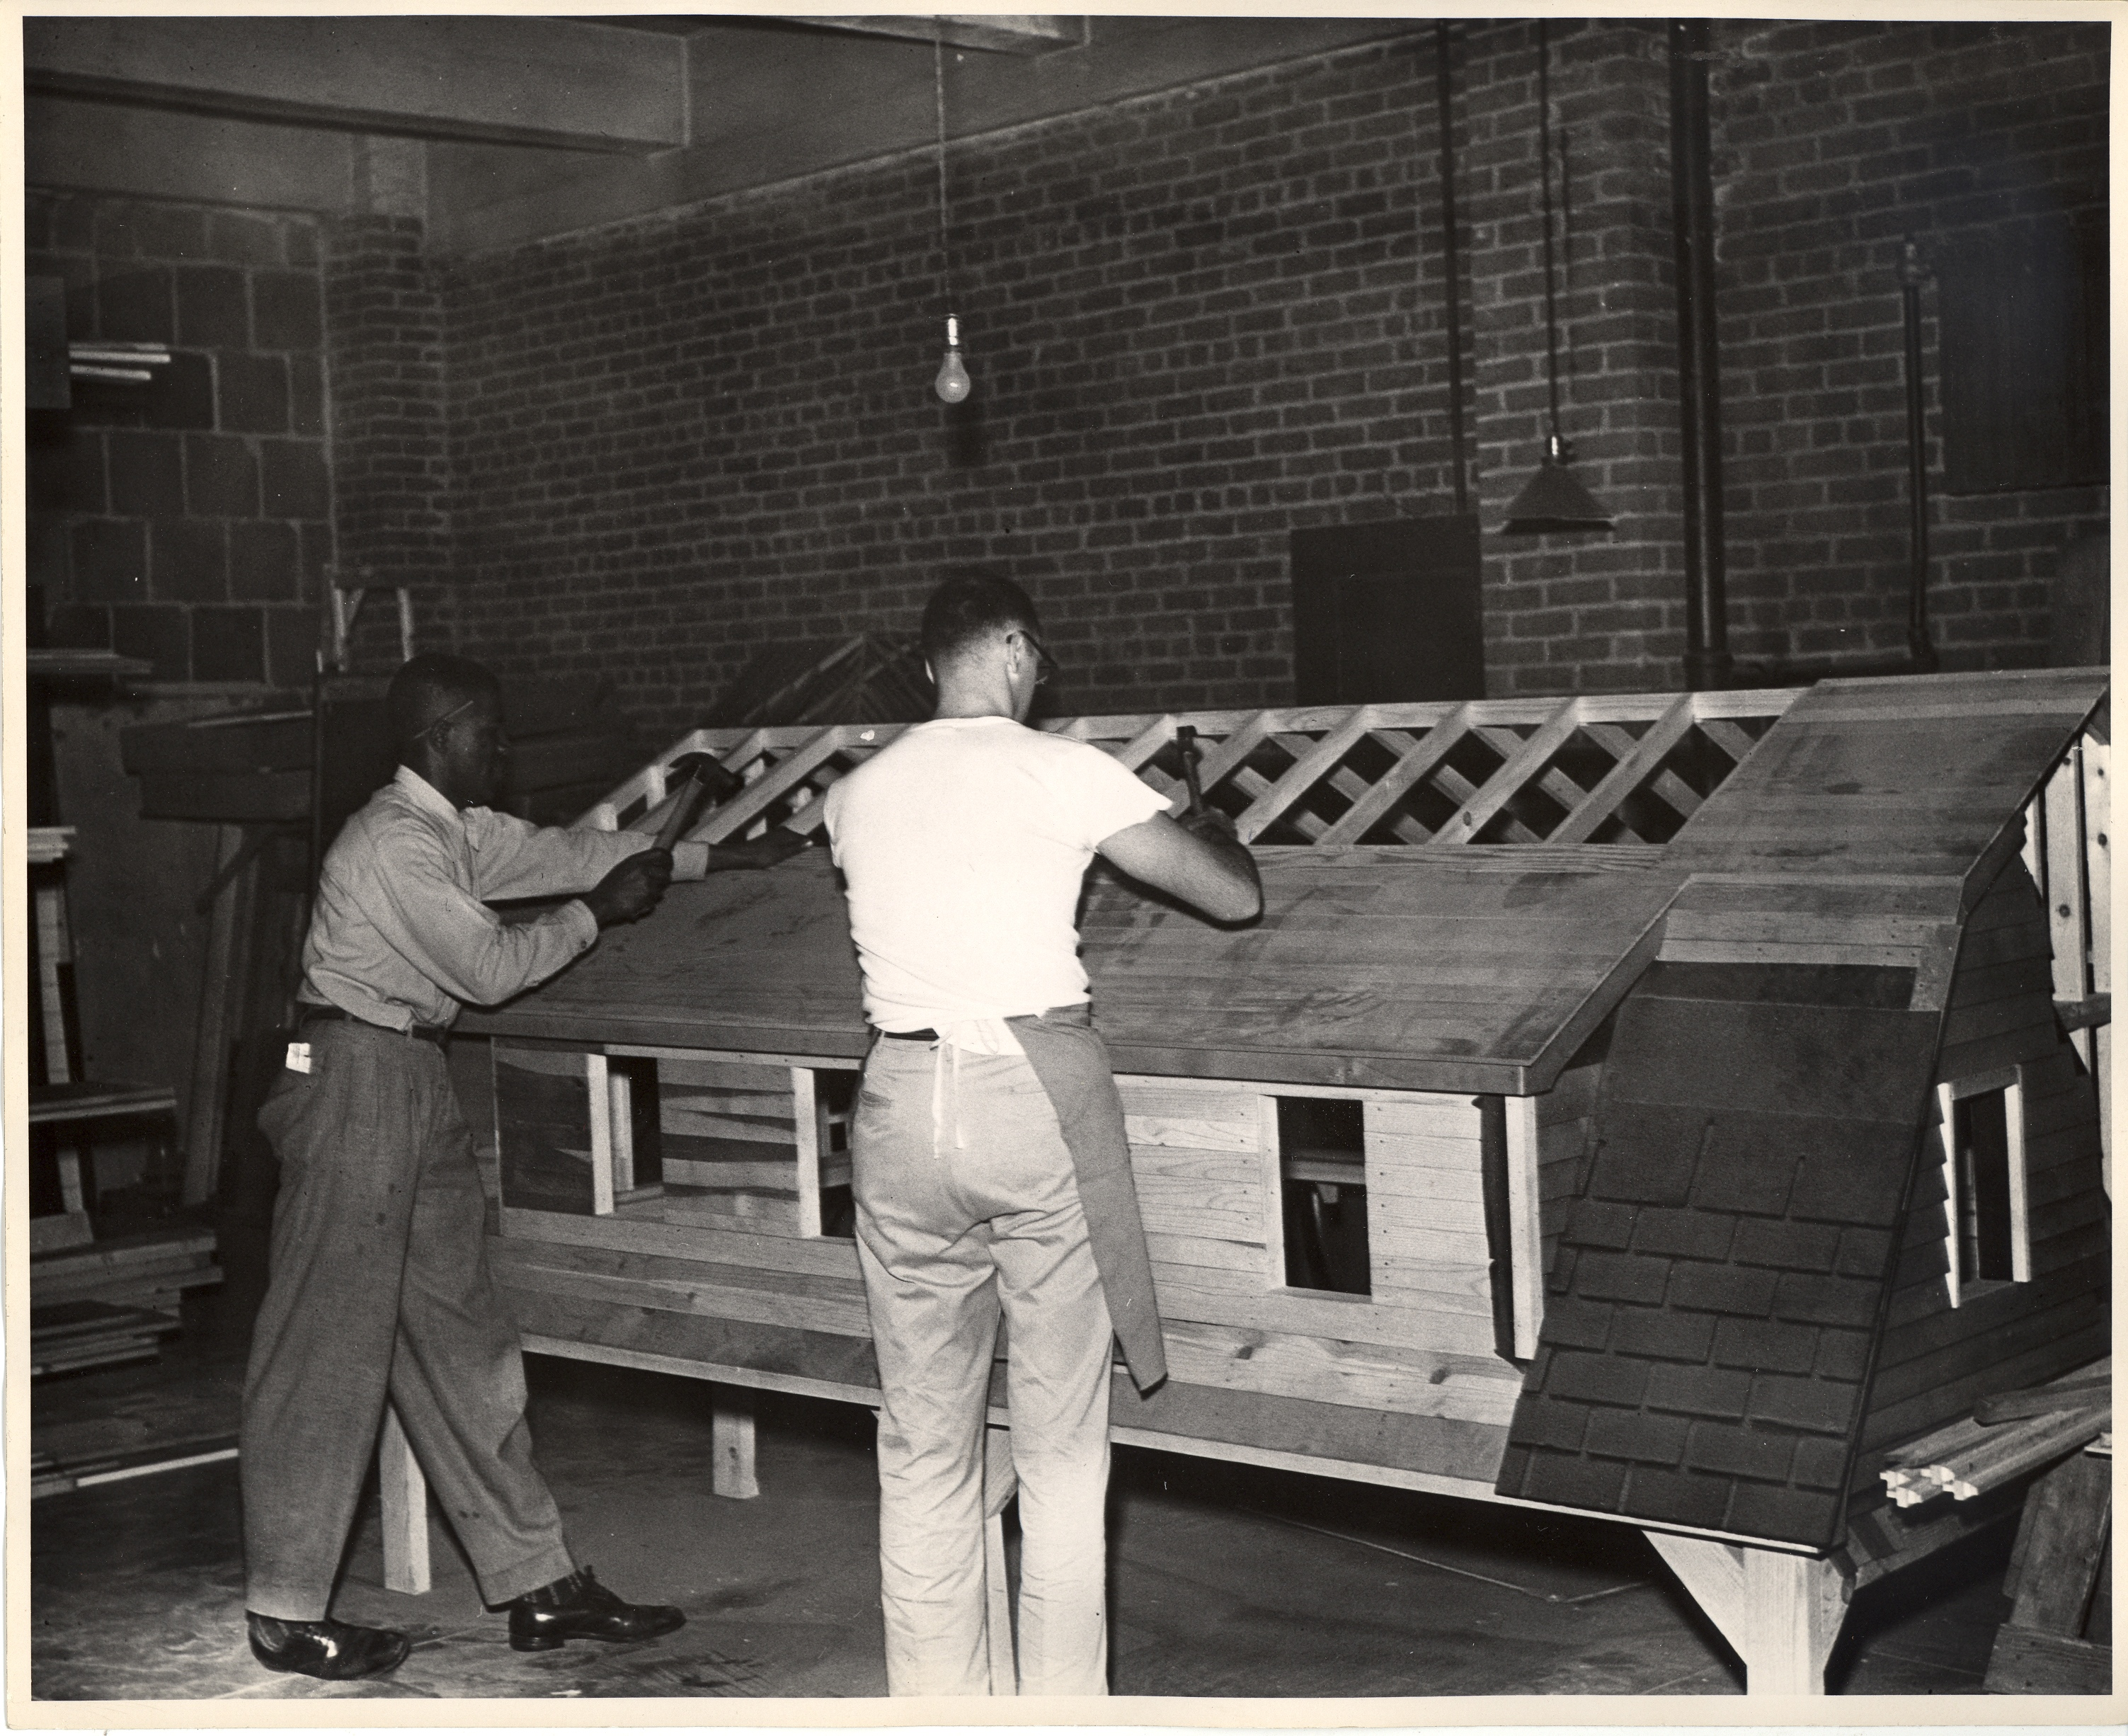 Students, likely studying carpentry, are shown working on the roof of a model of a house in a classroom at the New York Trade School.